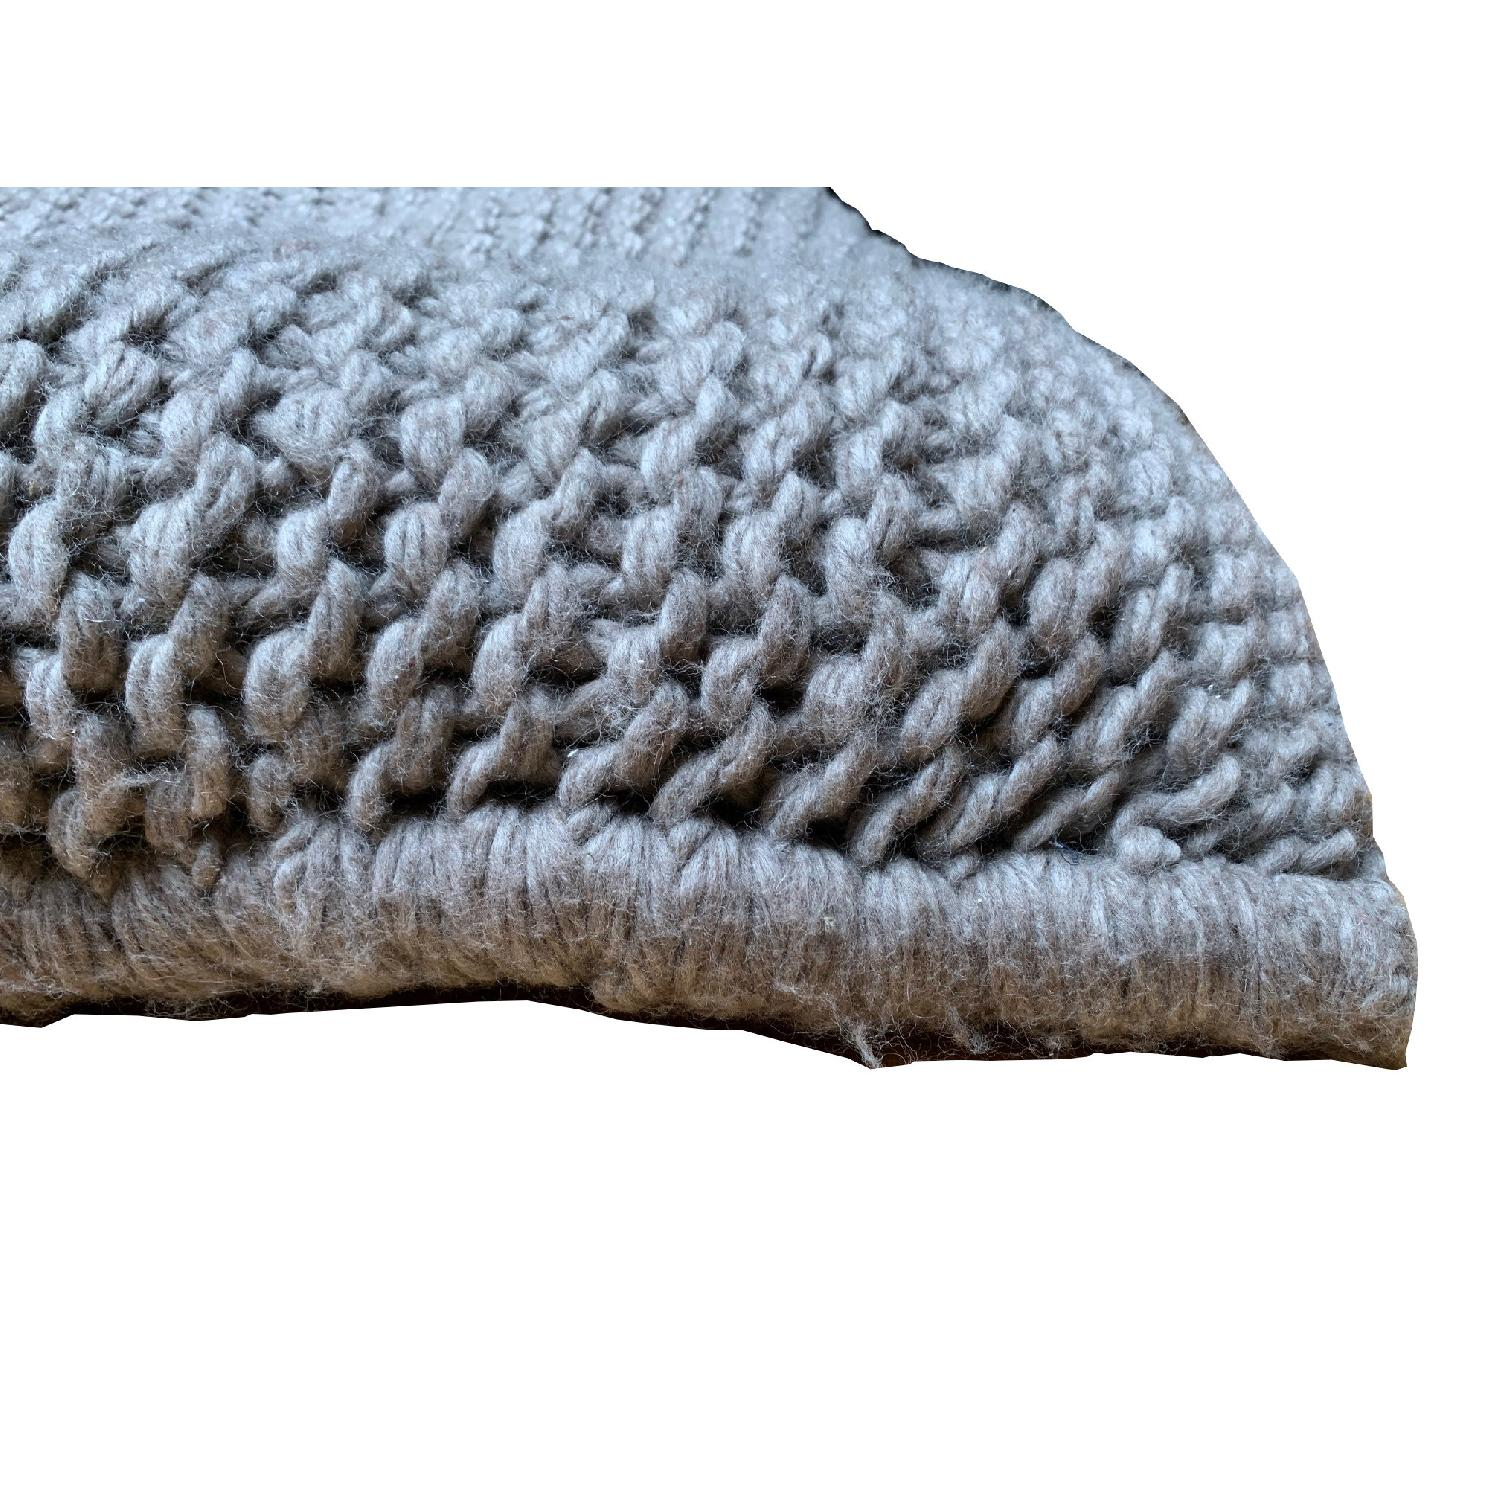 Nest Knitted Bean Bag - image-6